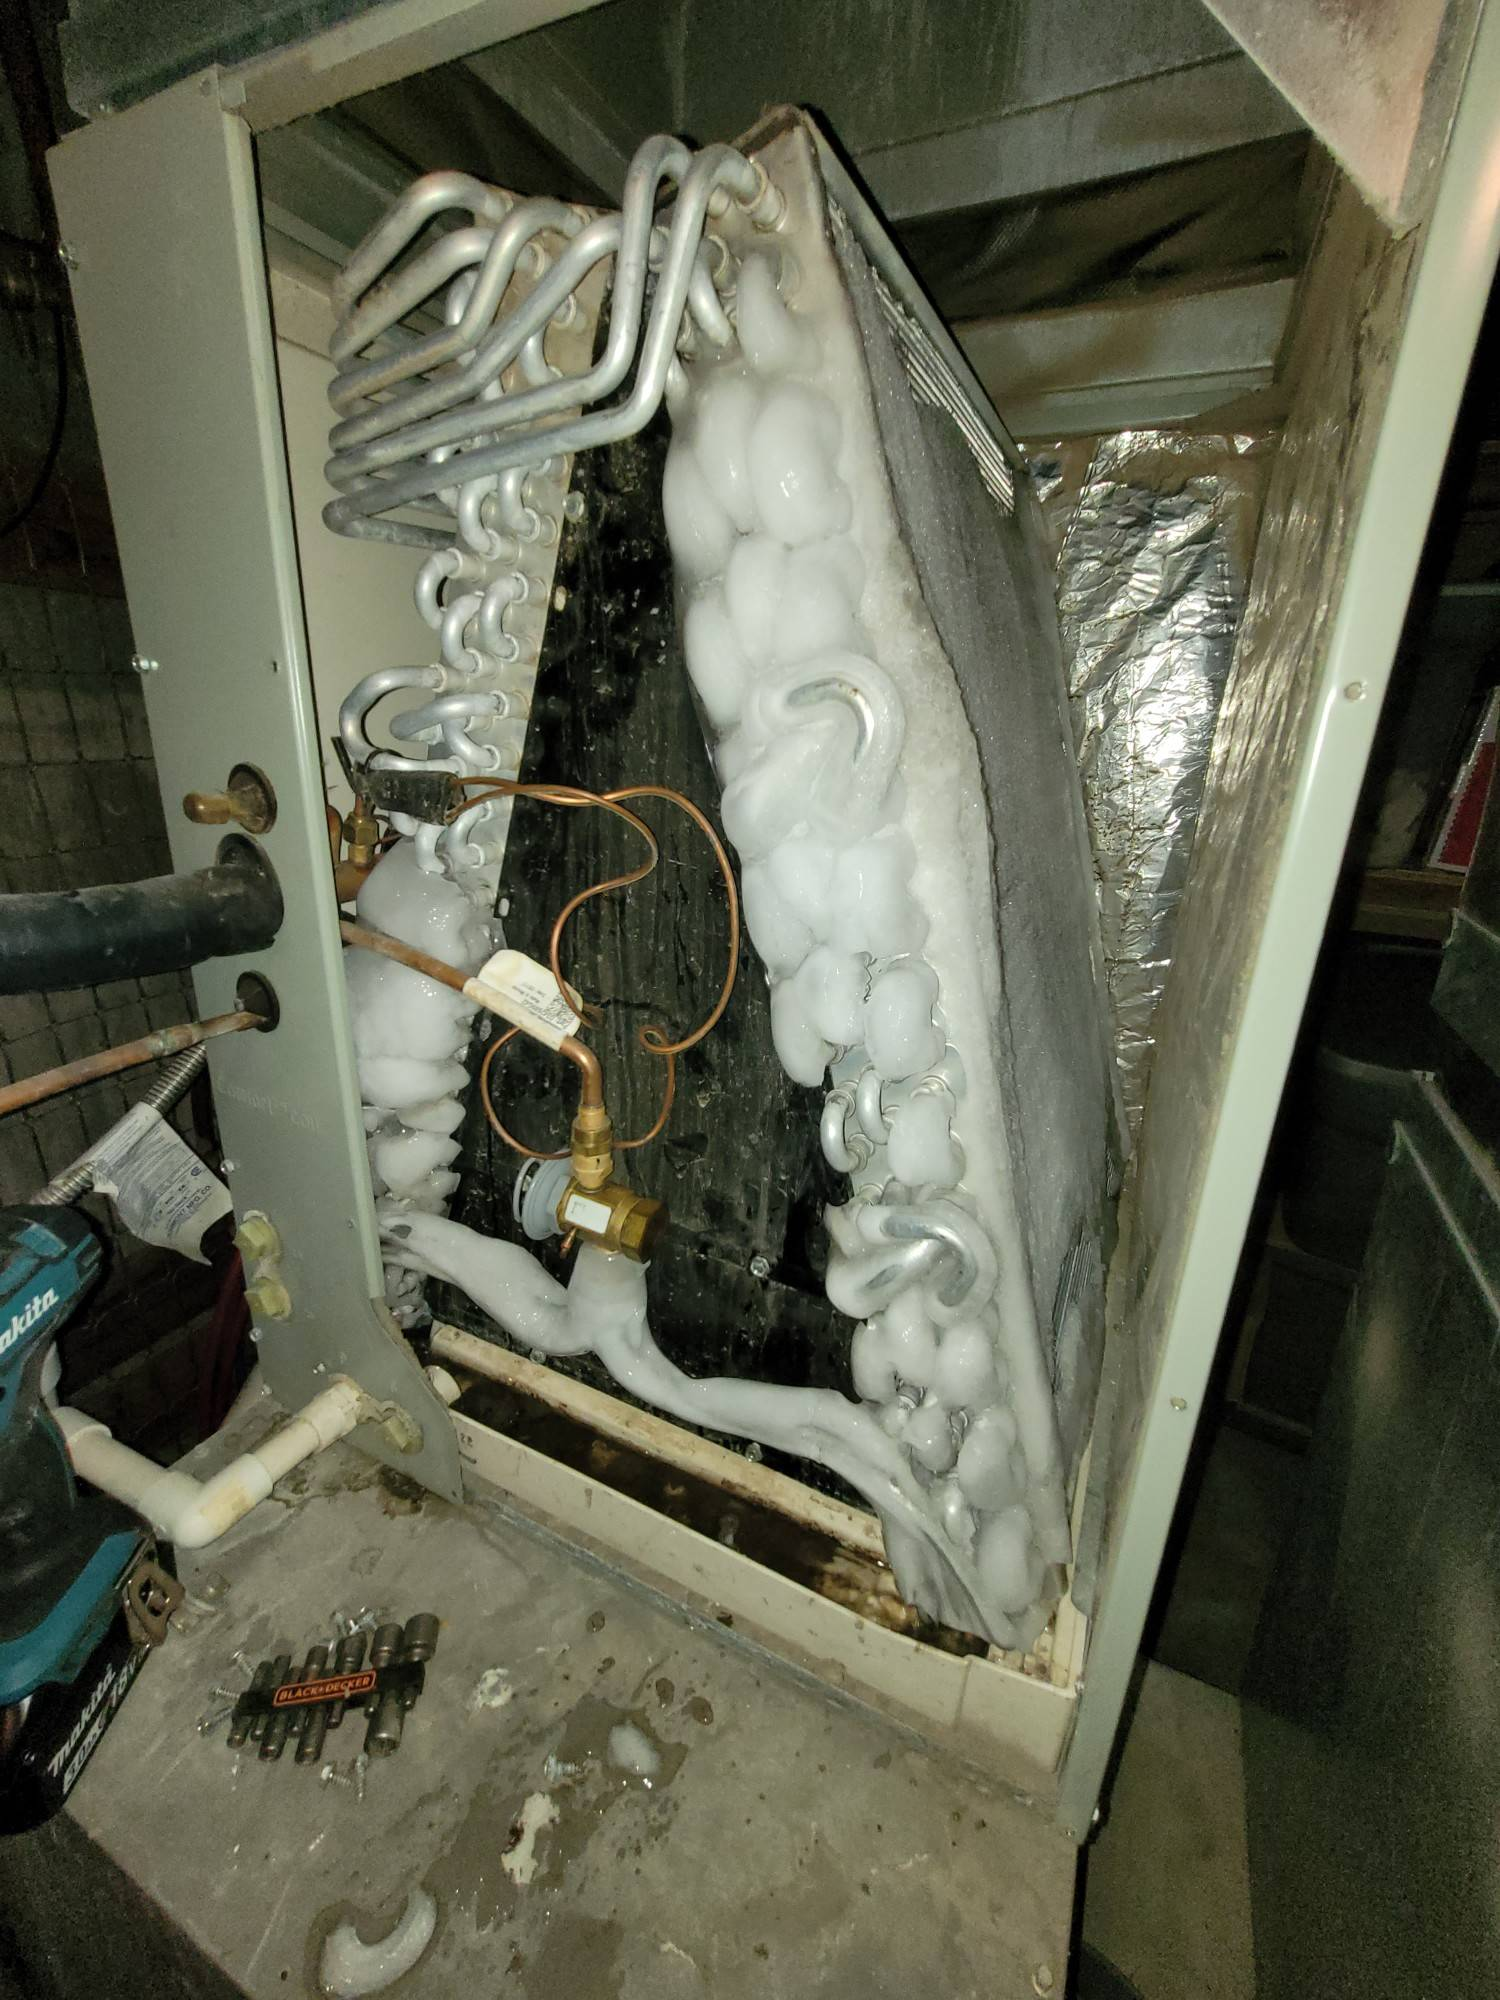 air conditioner unit with ice on it